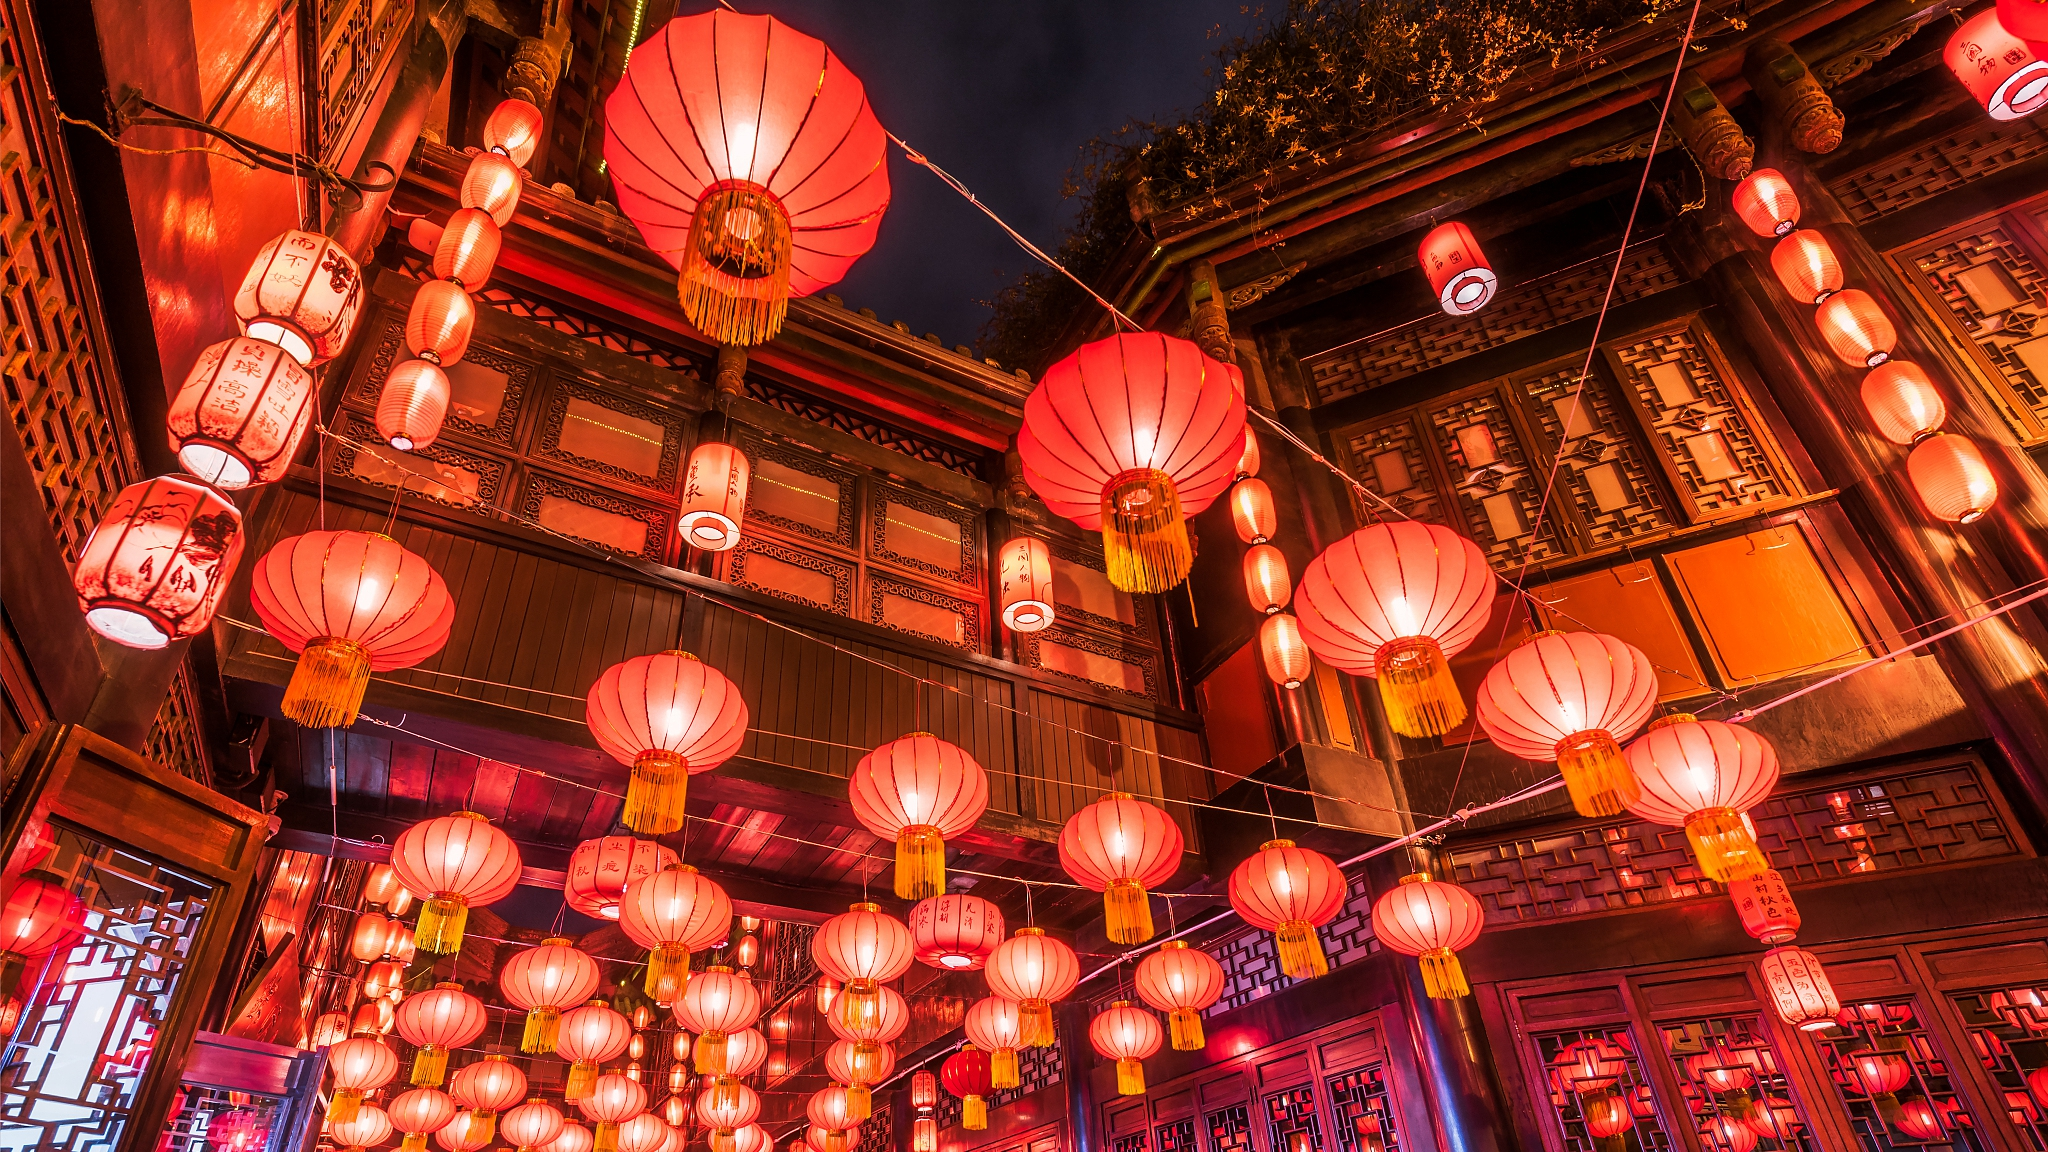 Travelogue: What is the Lantern Festival?